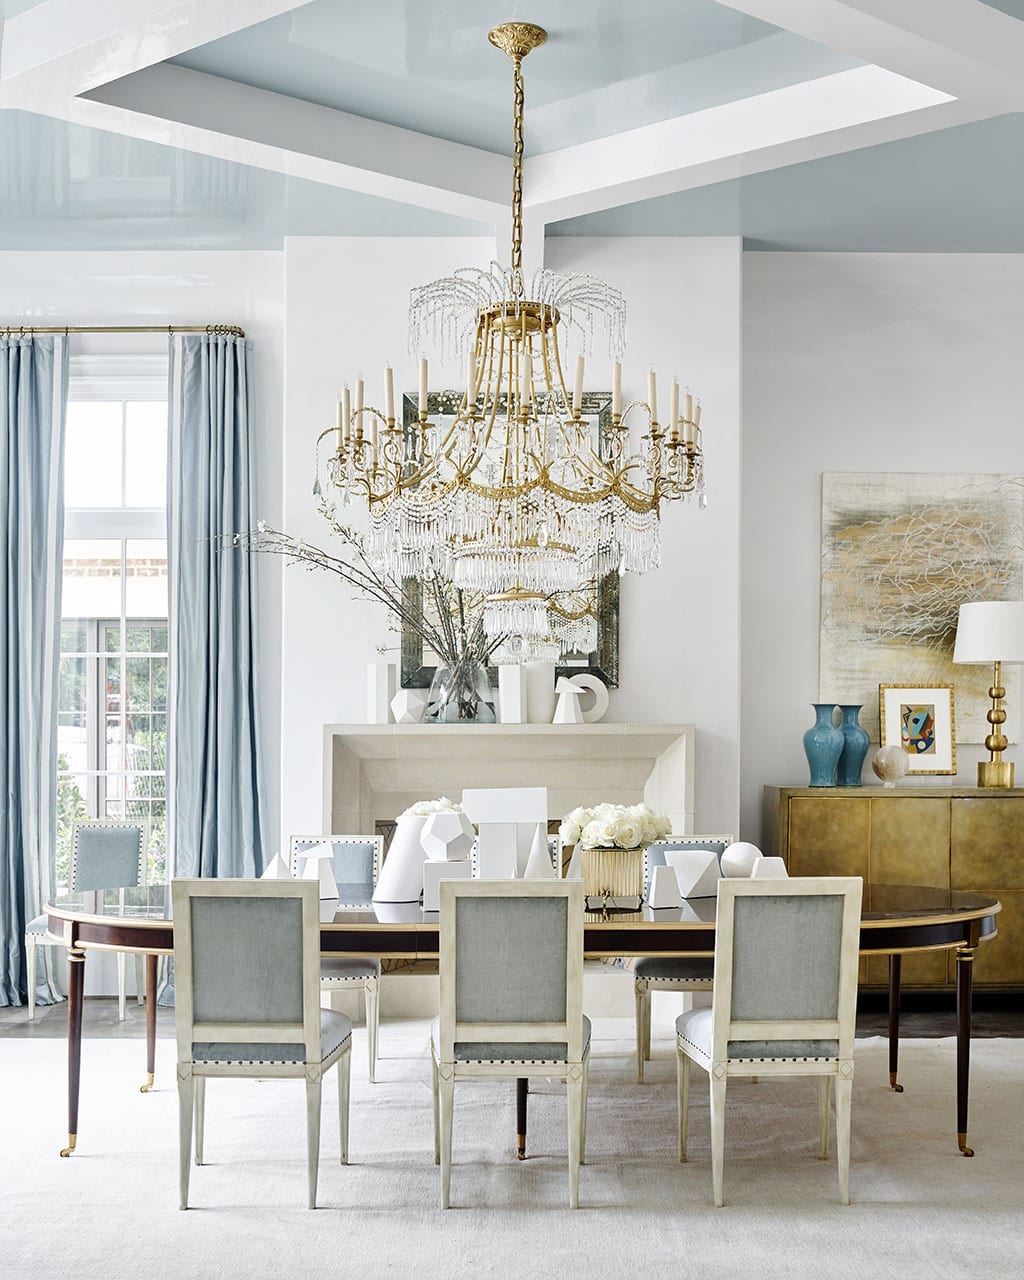 Suzanne-Kasler-Dining-Room-white-walls-blue-drapery-and-upholstery-pale-blue-ceiling